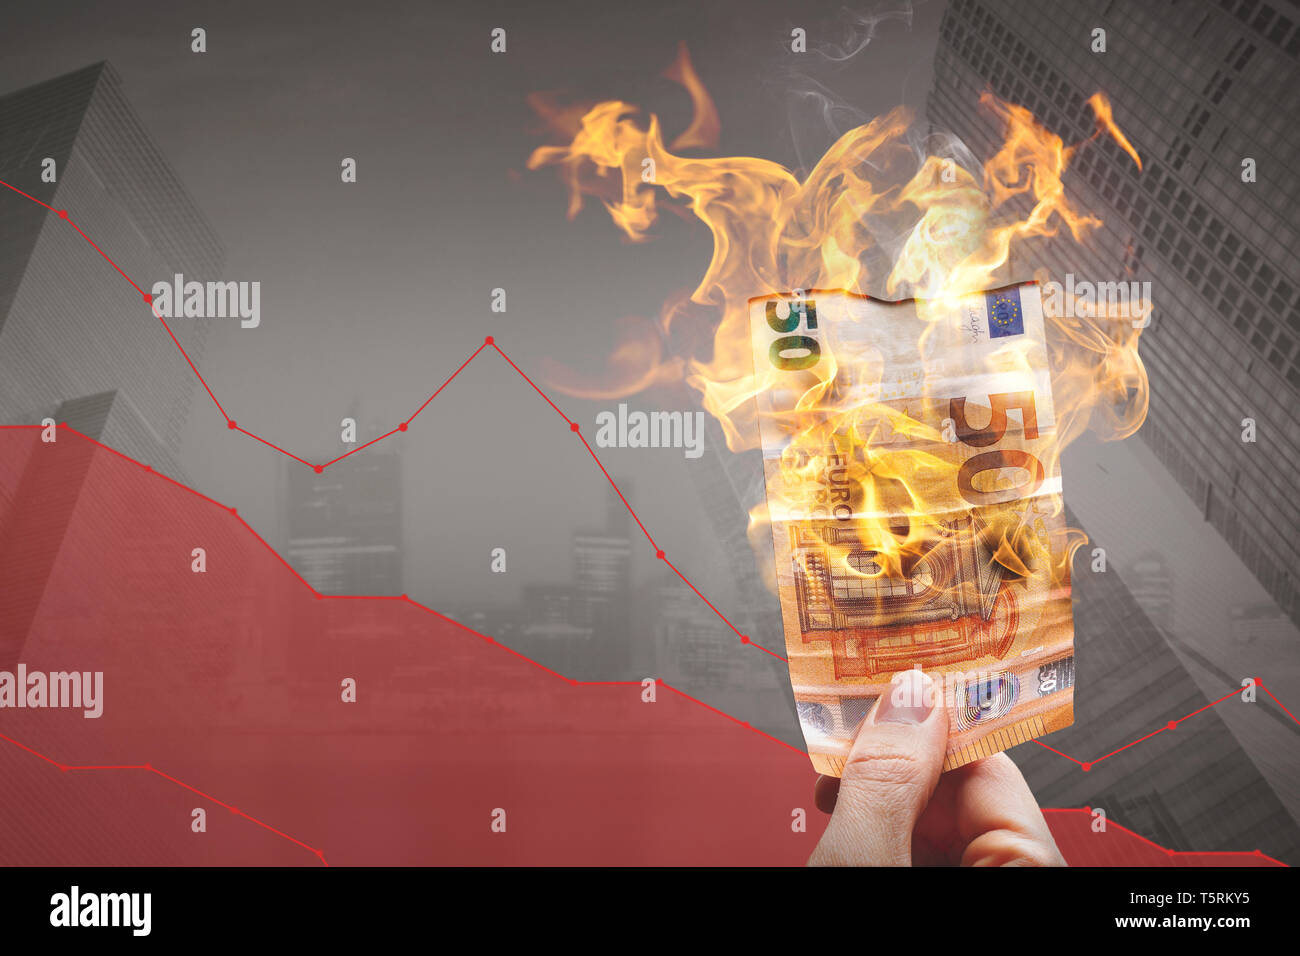 Loosing money concept – burning 50€ bill in front of a declining graph - Stock Image